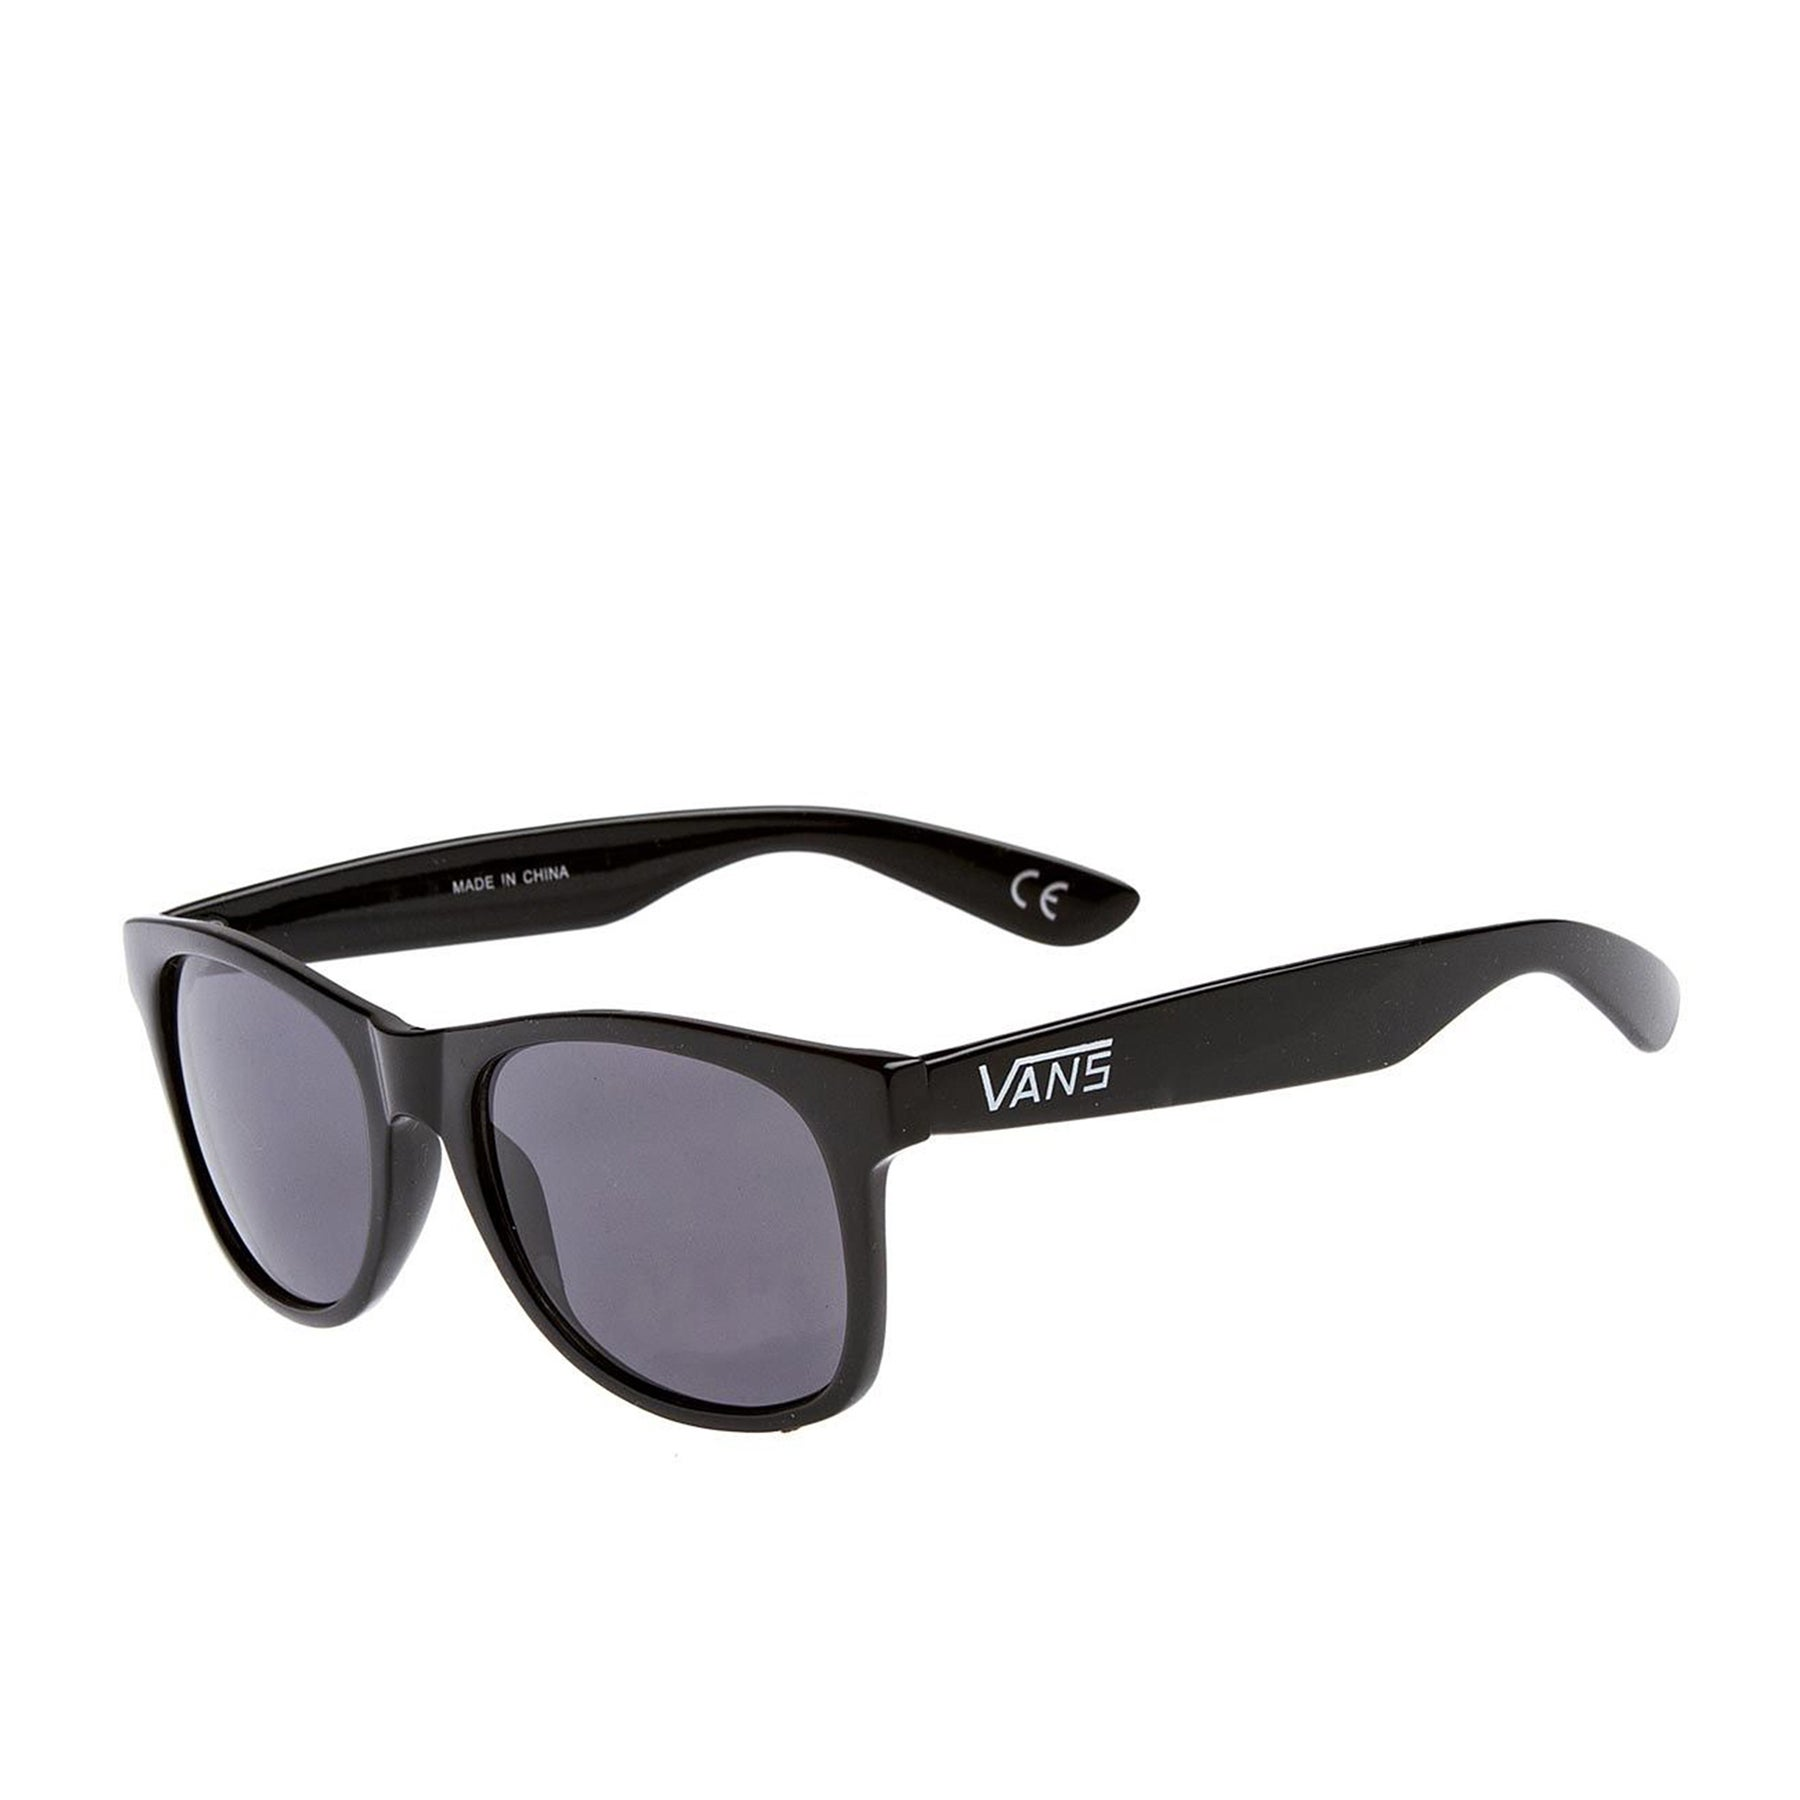 1777d576fc De Sol Gafas Sol De Gafas Surfdome Disponible Disponible Gafas Surfdome  QxWCdorBe